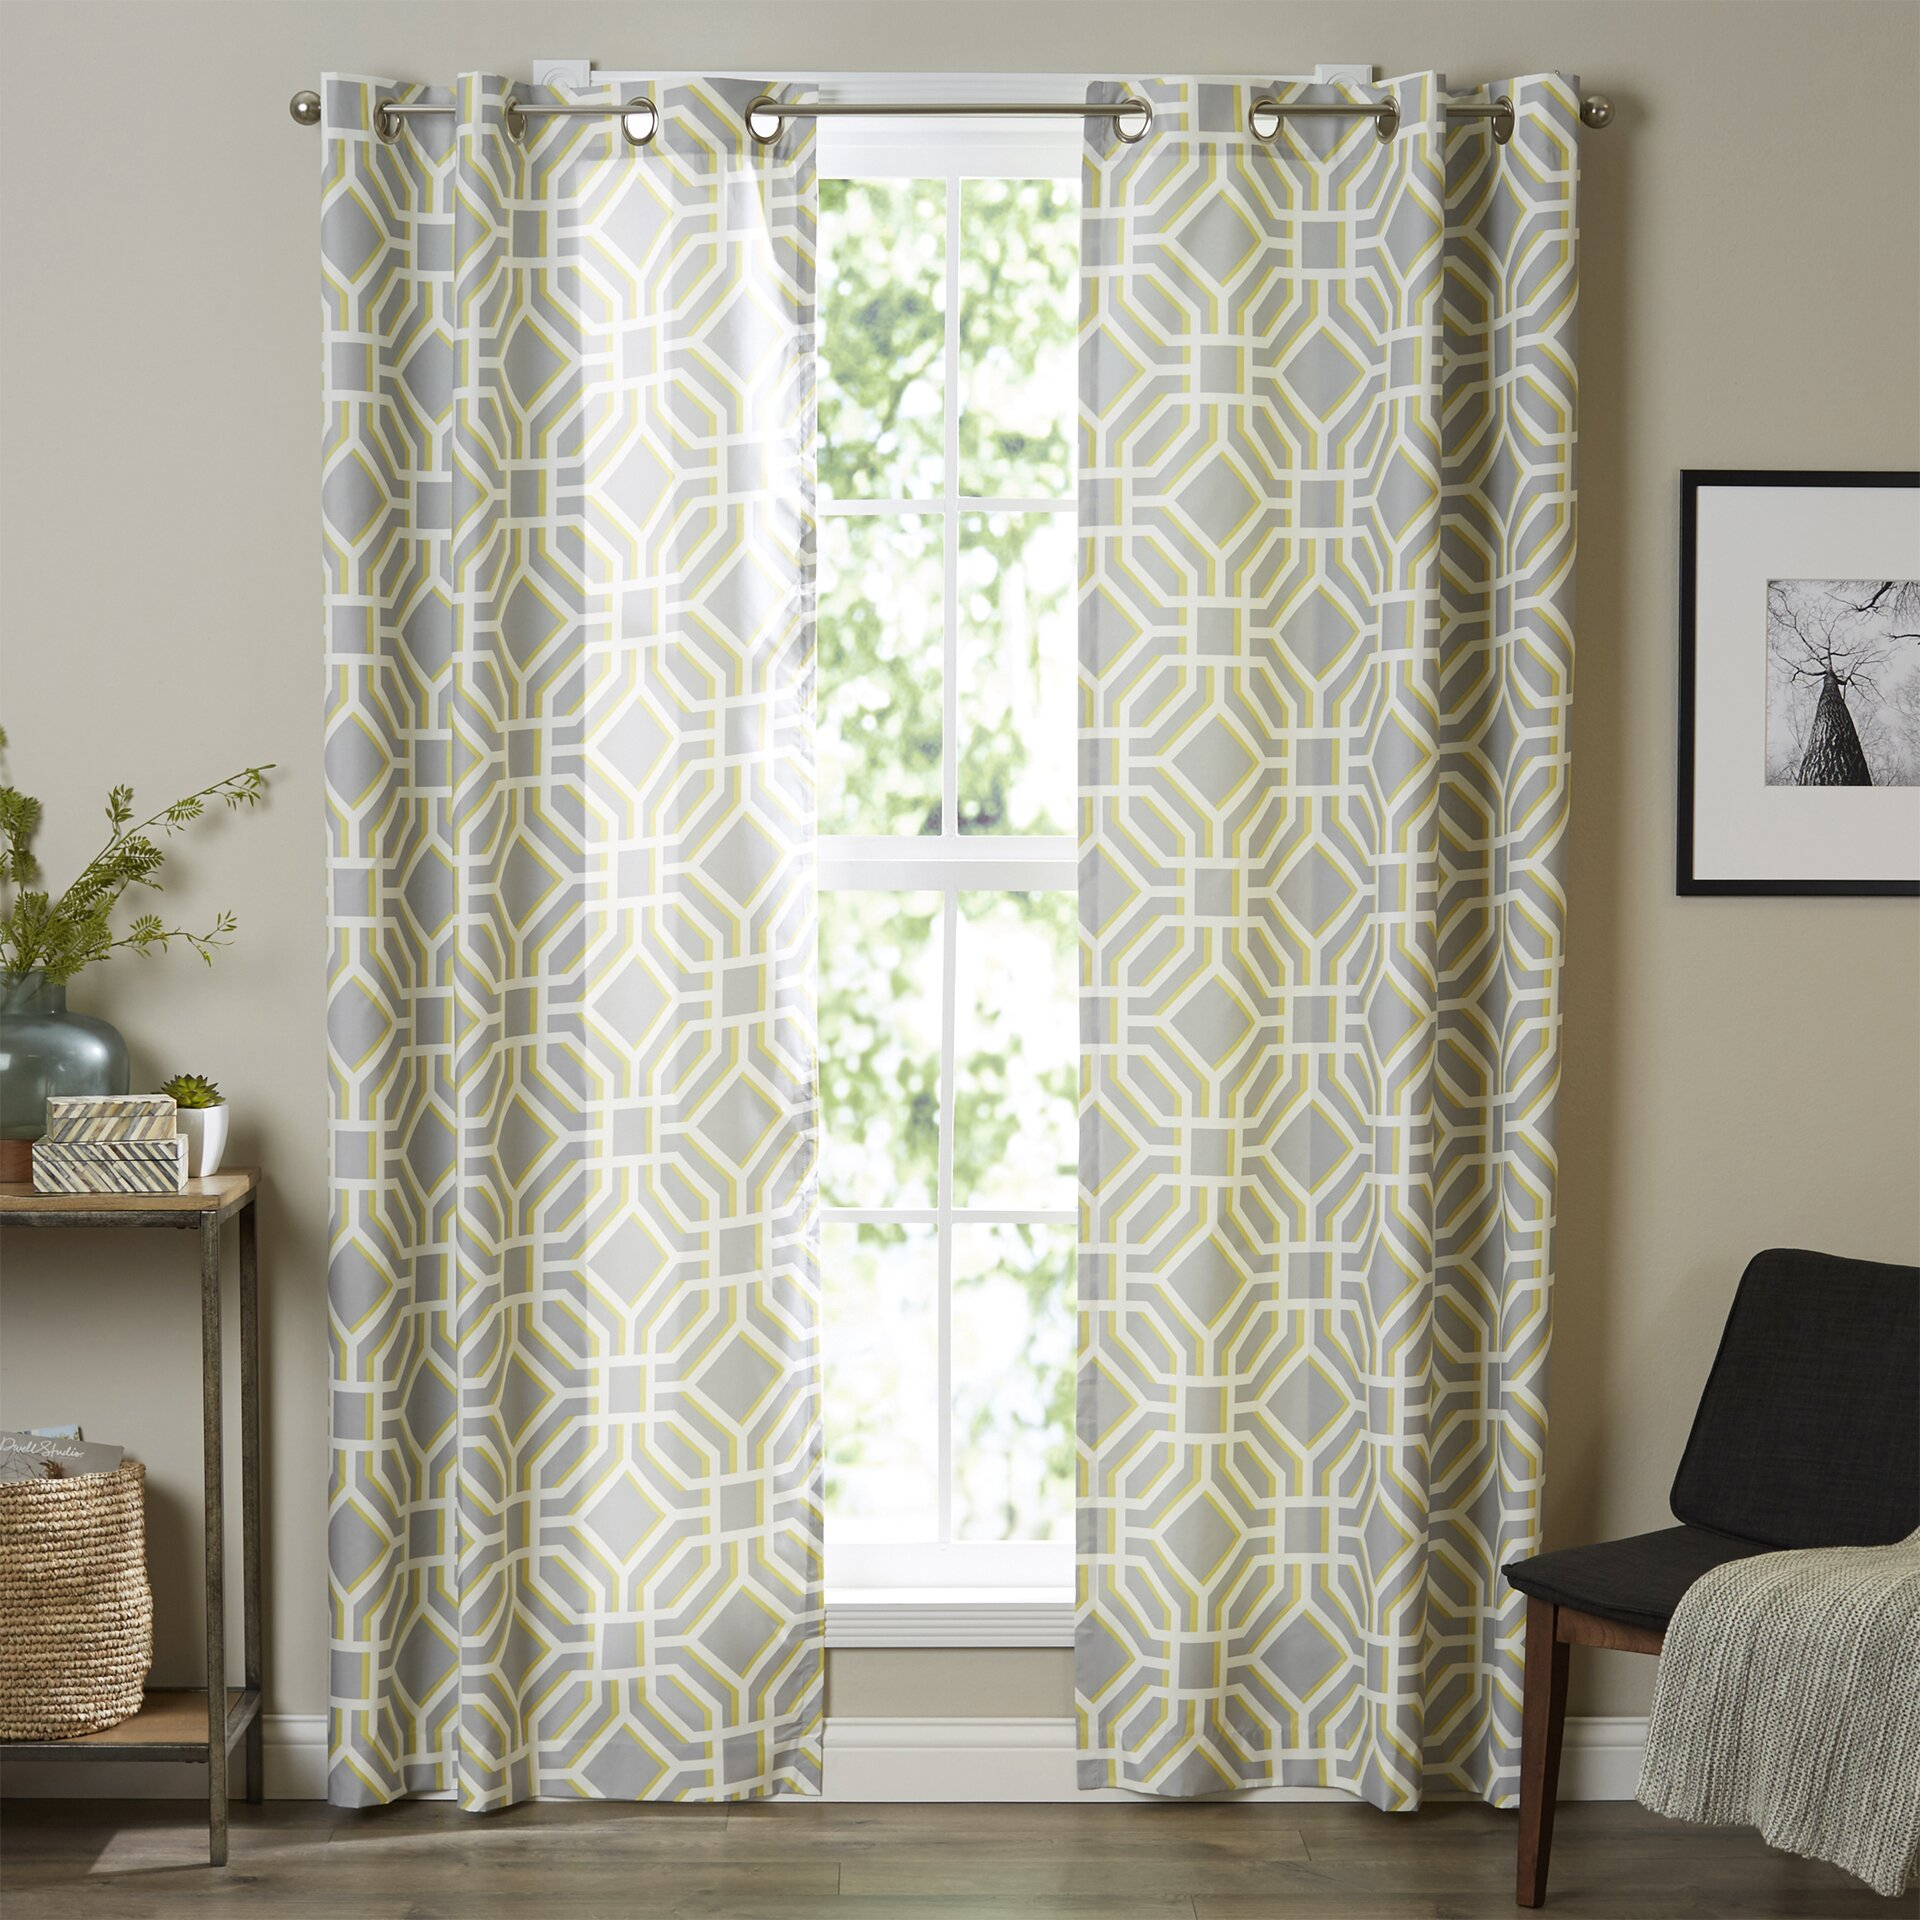 Wayfair Com Sales: Intelligent Design Maci Single Curtain Panel & Reviews